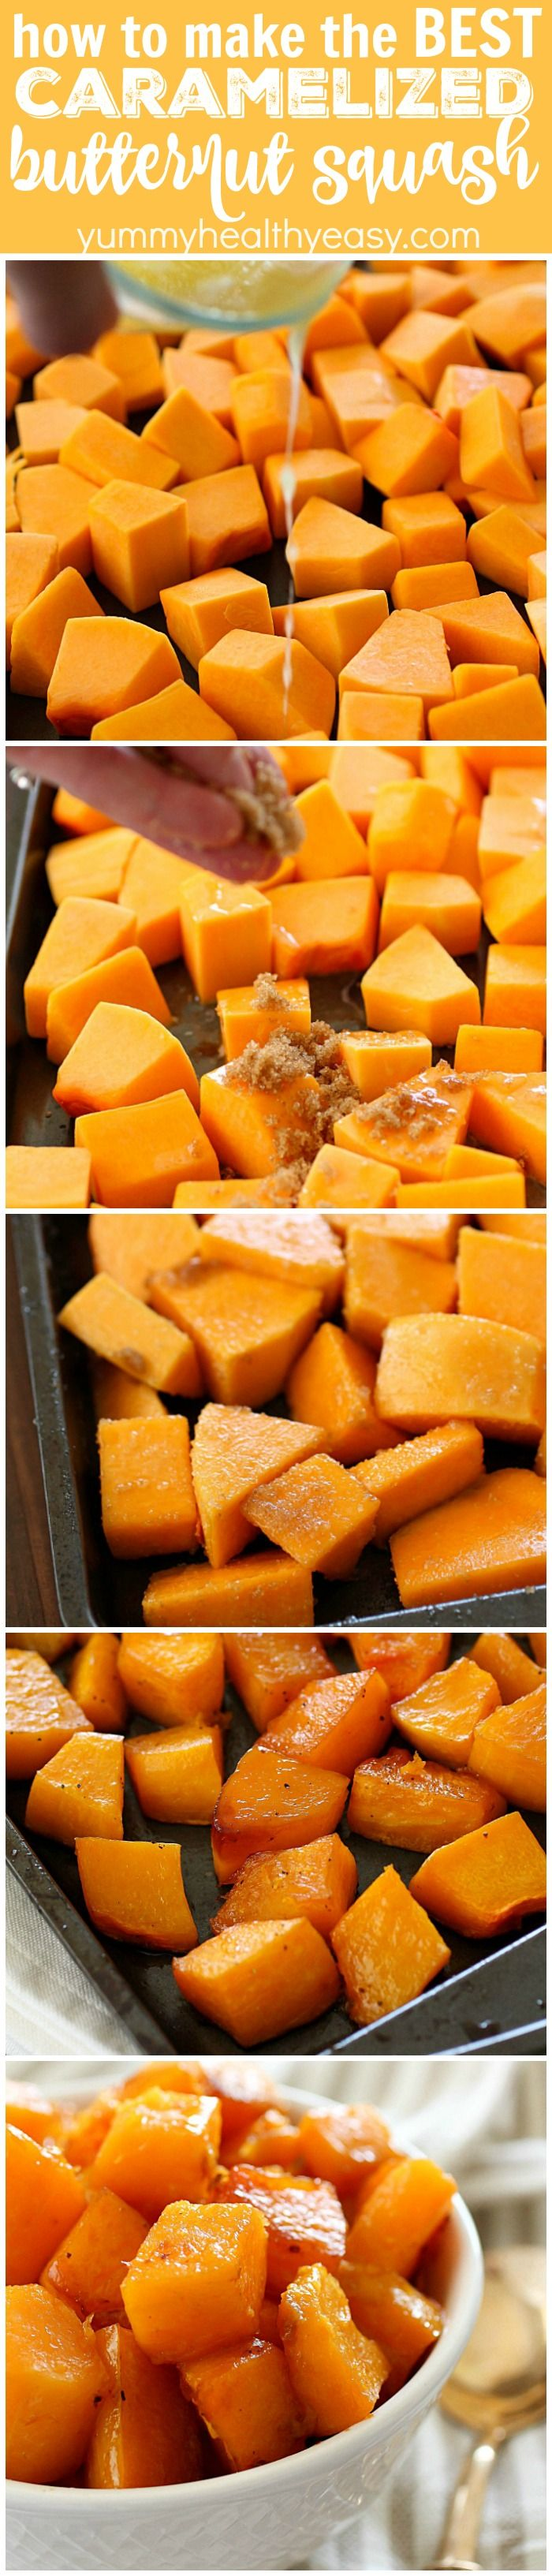 herb baked butternut squash clean eating herb baked butternut squash ...